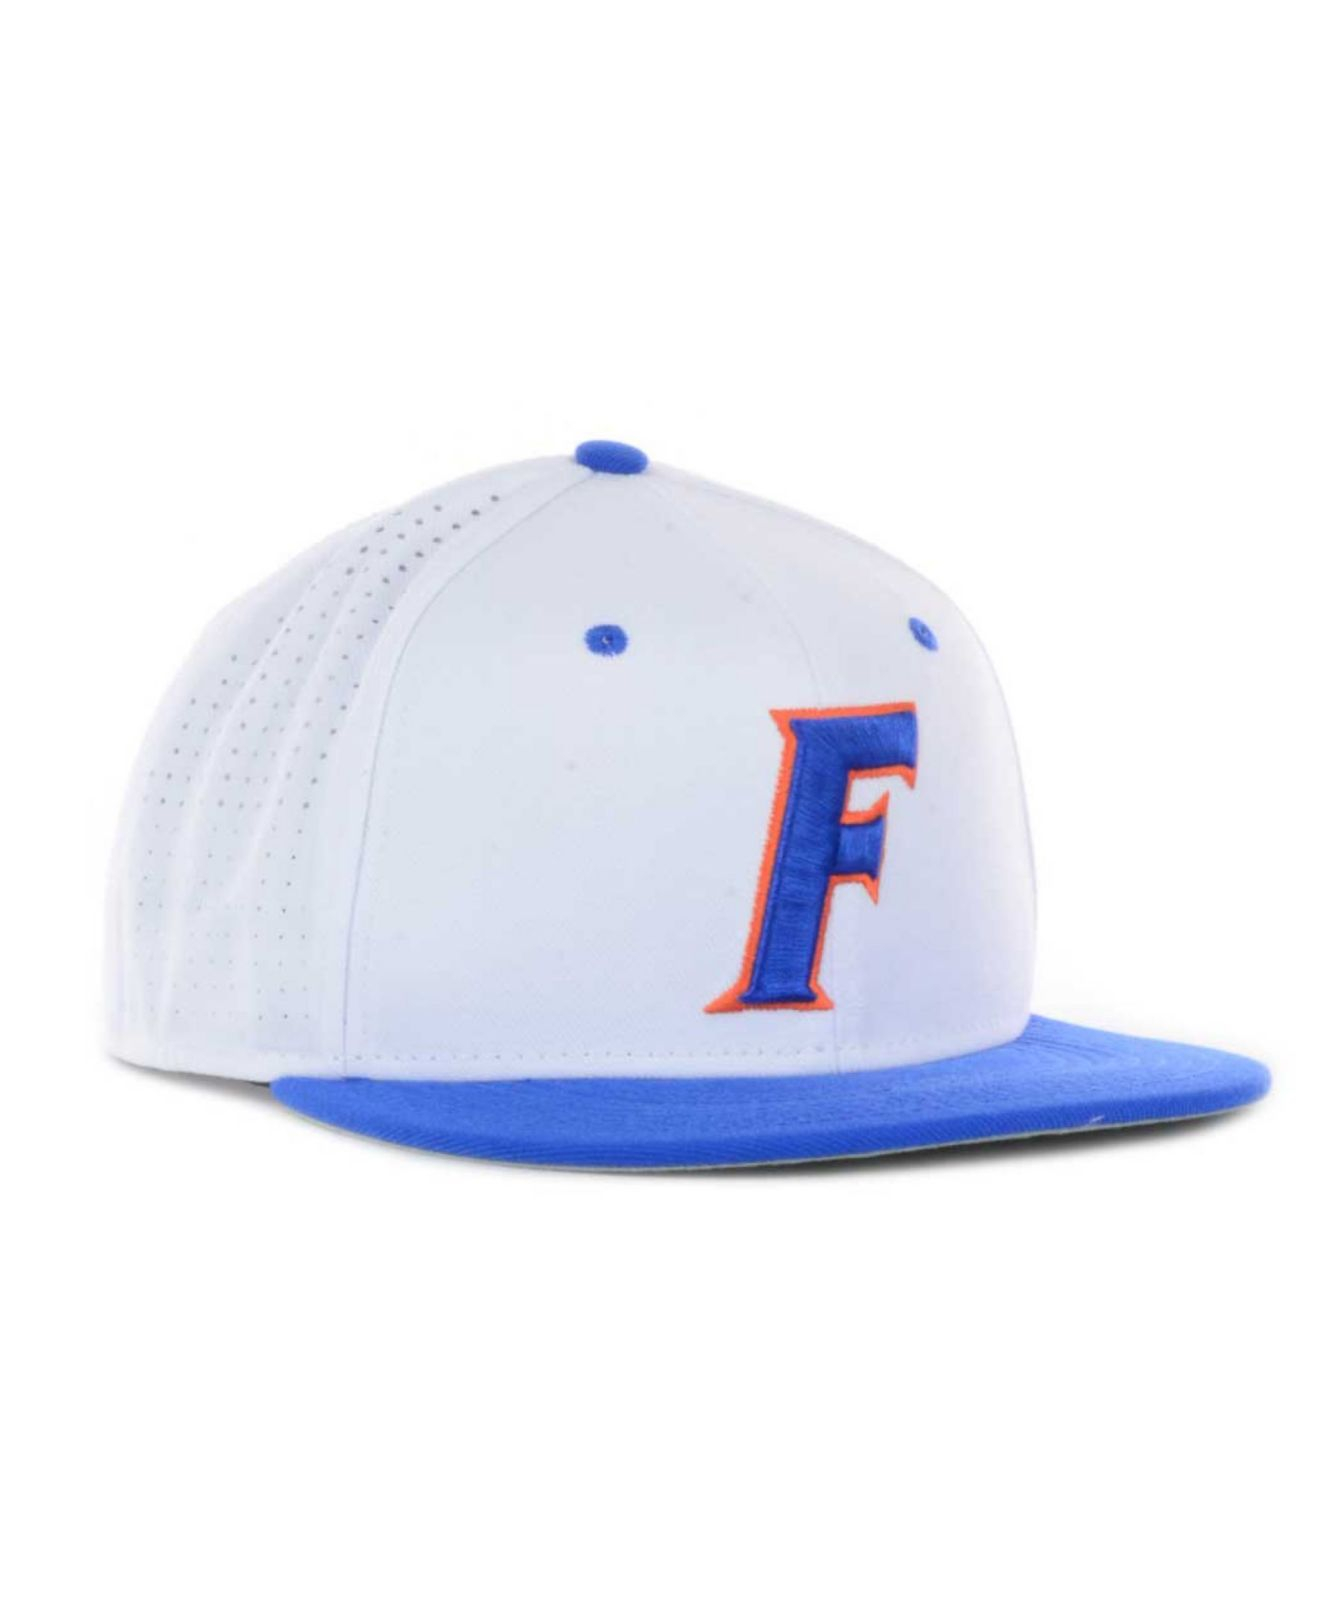 arrives d23c9 e165f Nike Florida Gators Authentic Vapor Fitted Cap in White for Men - Lyst